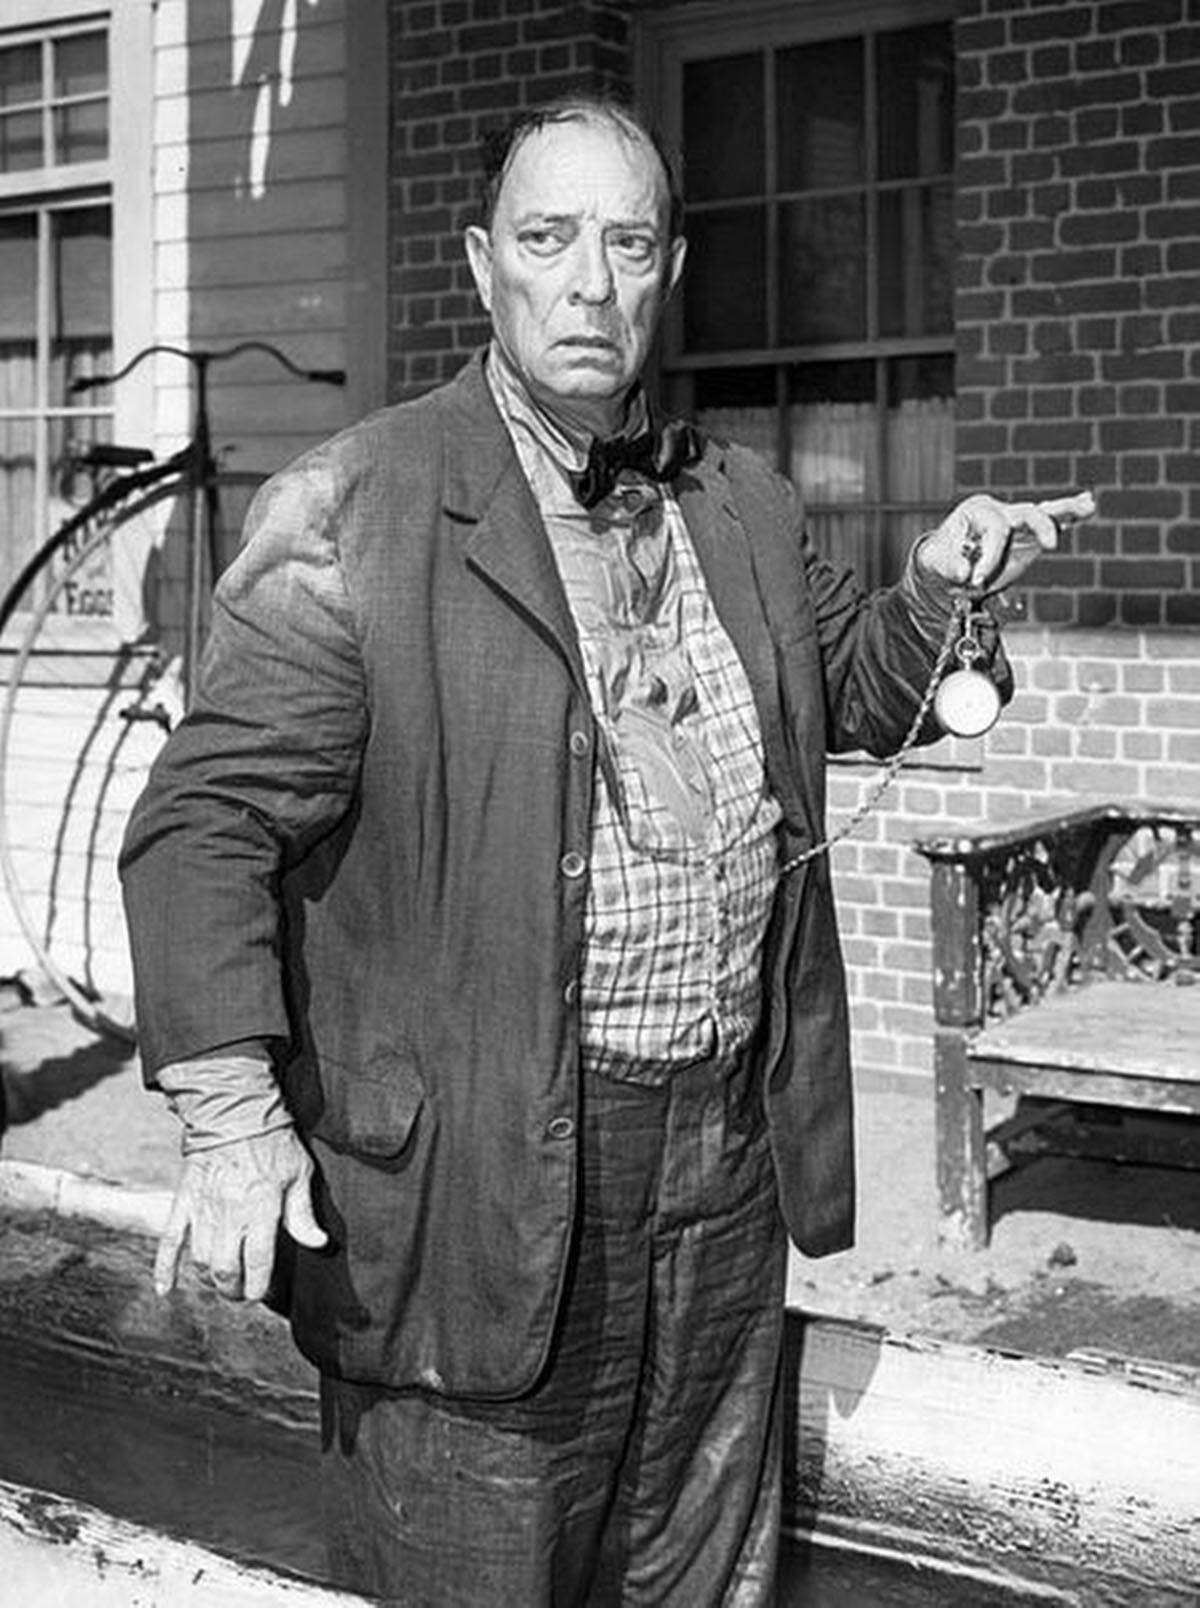 Photo of Buster Keaton from the television program The Twilight Zone. In this episode,